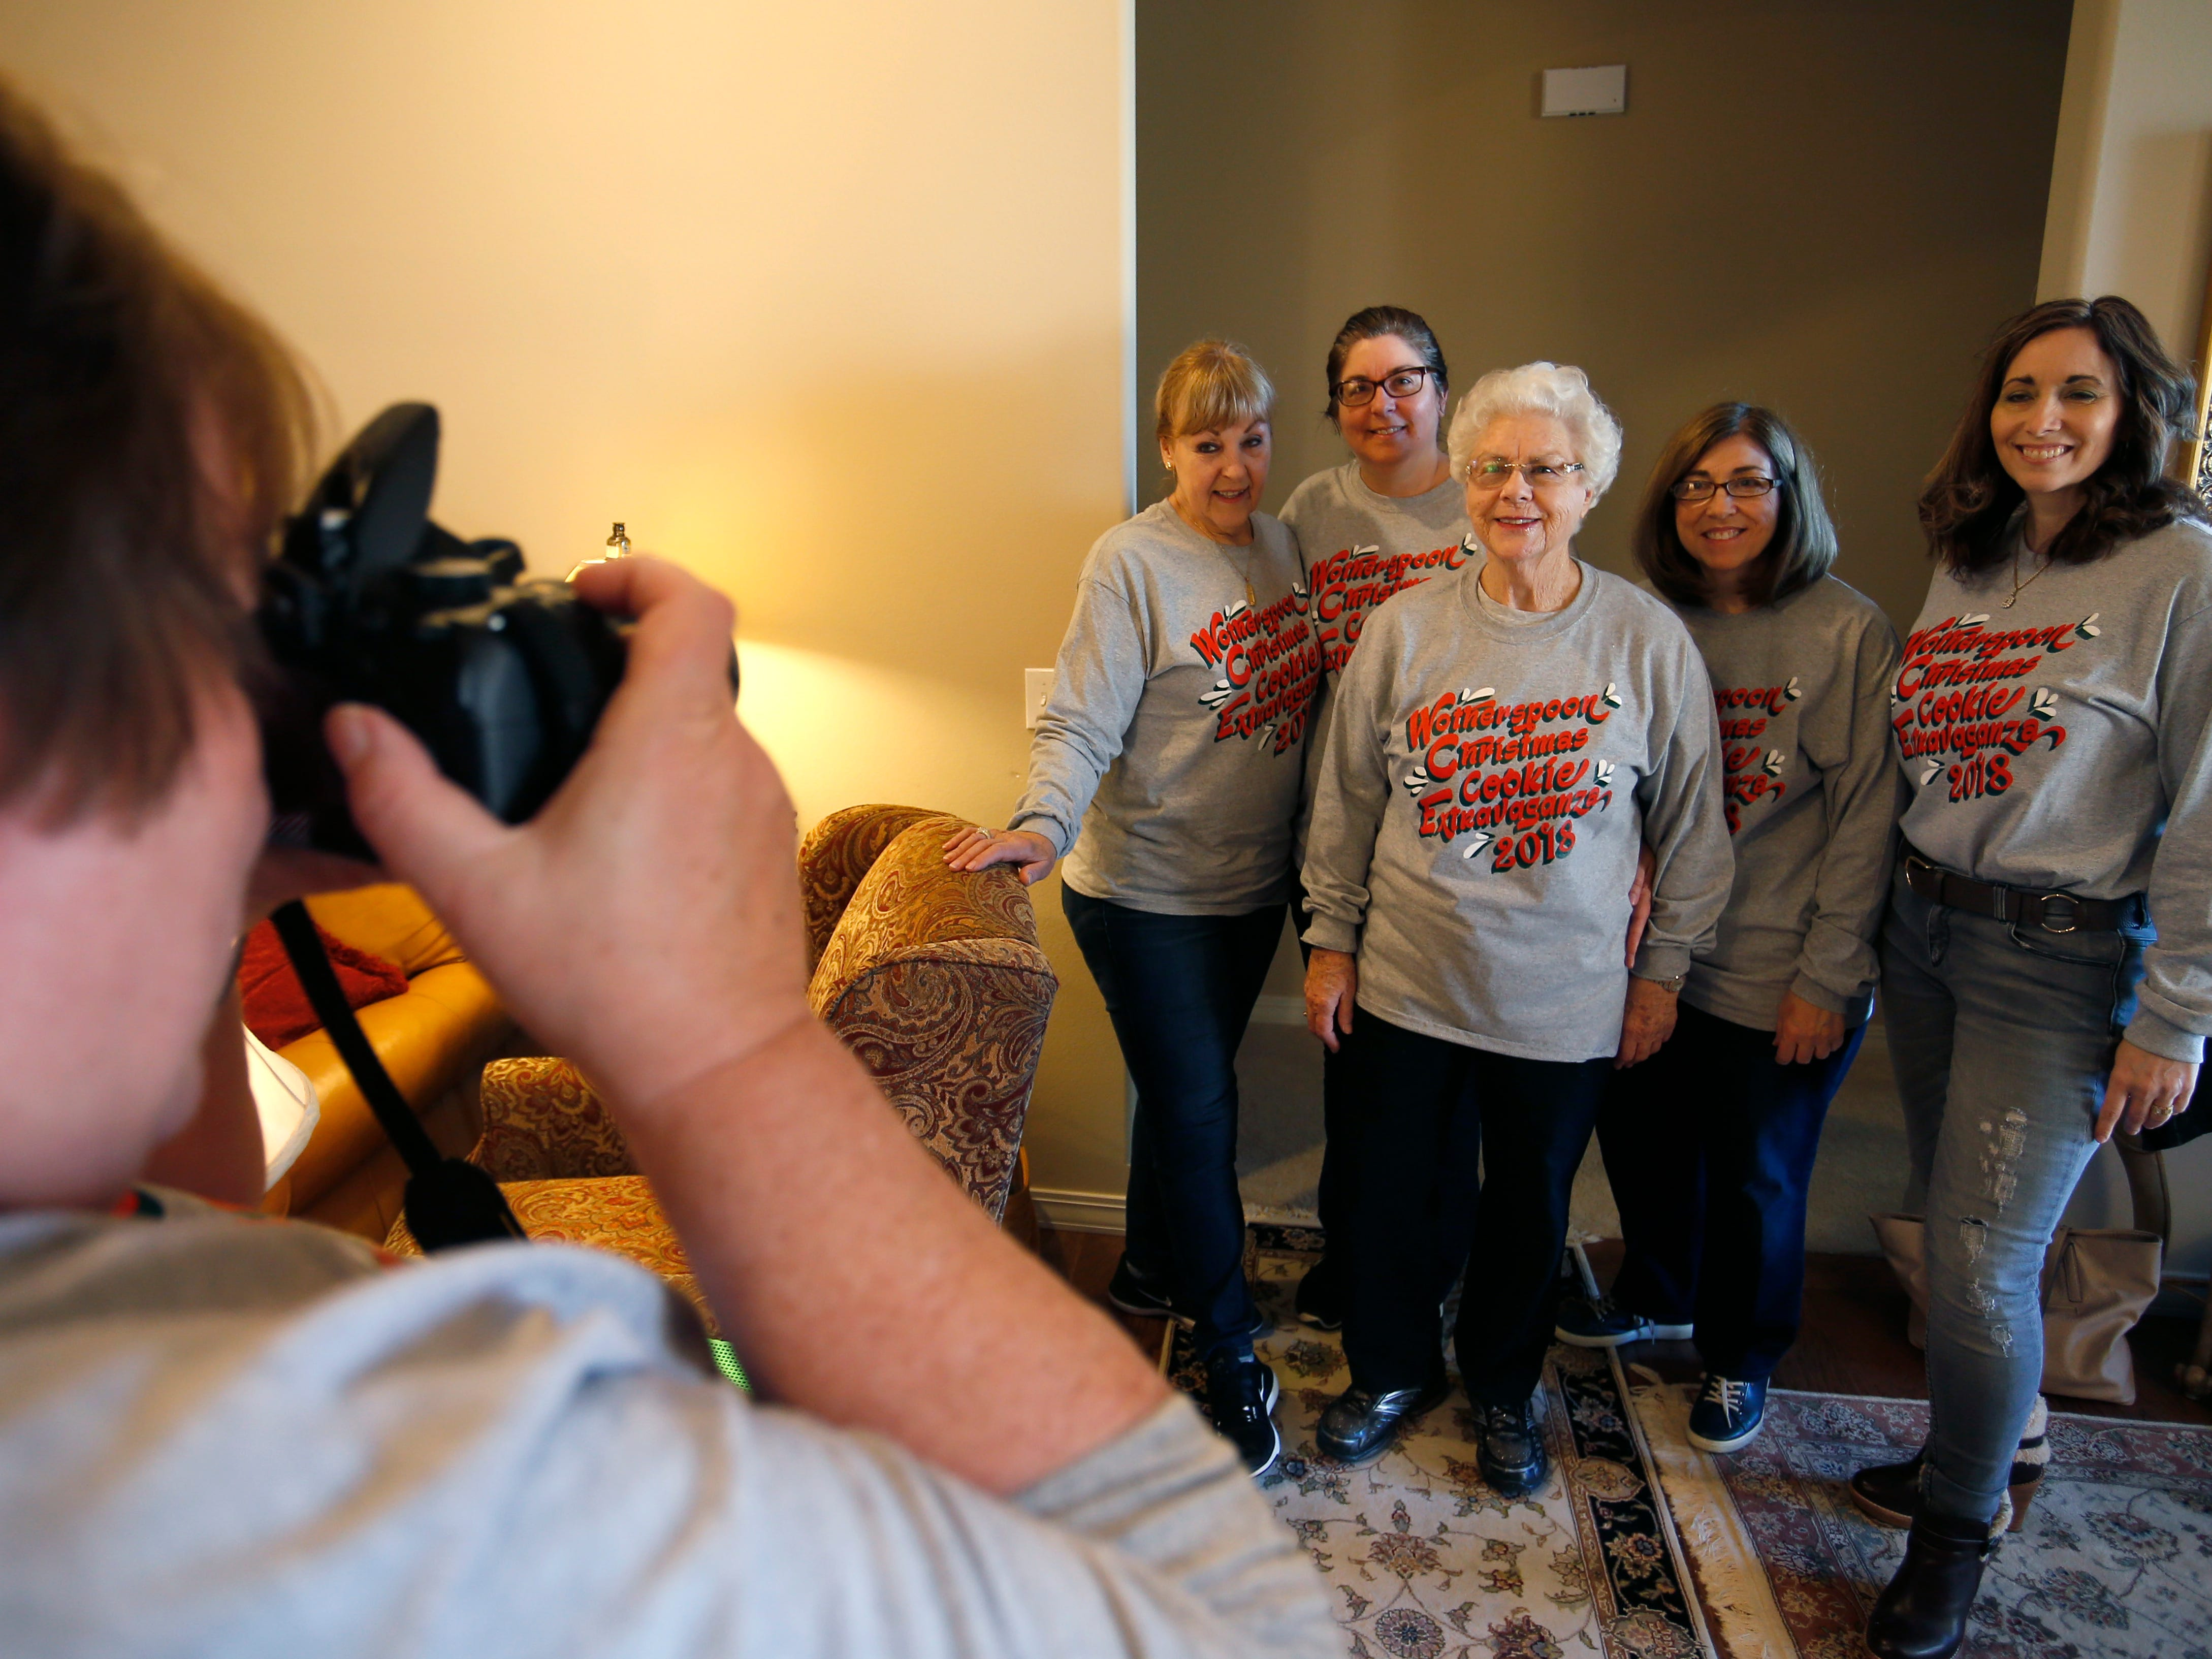 Family friend Sally Hibbs takes a photo of Jeanette Wotherspoon (center) and her daughters (from left) Ramona DeArmond, Marie Nelson, Rebecca Wotherspoon and Barbara Wotherspoon during the Wotherspoon Christmas cookie extravaganza on Saturday, Dec. 15, 2018.